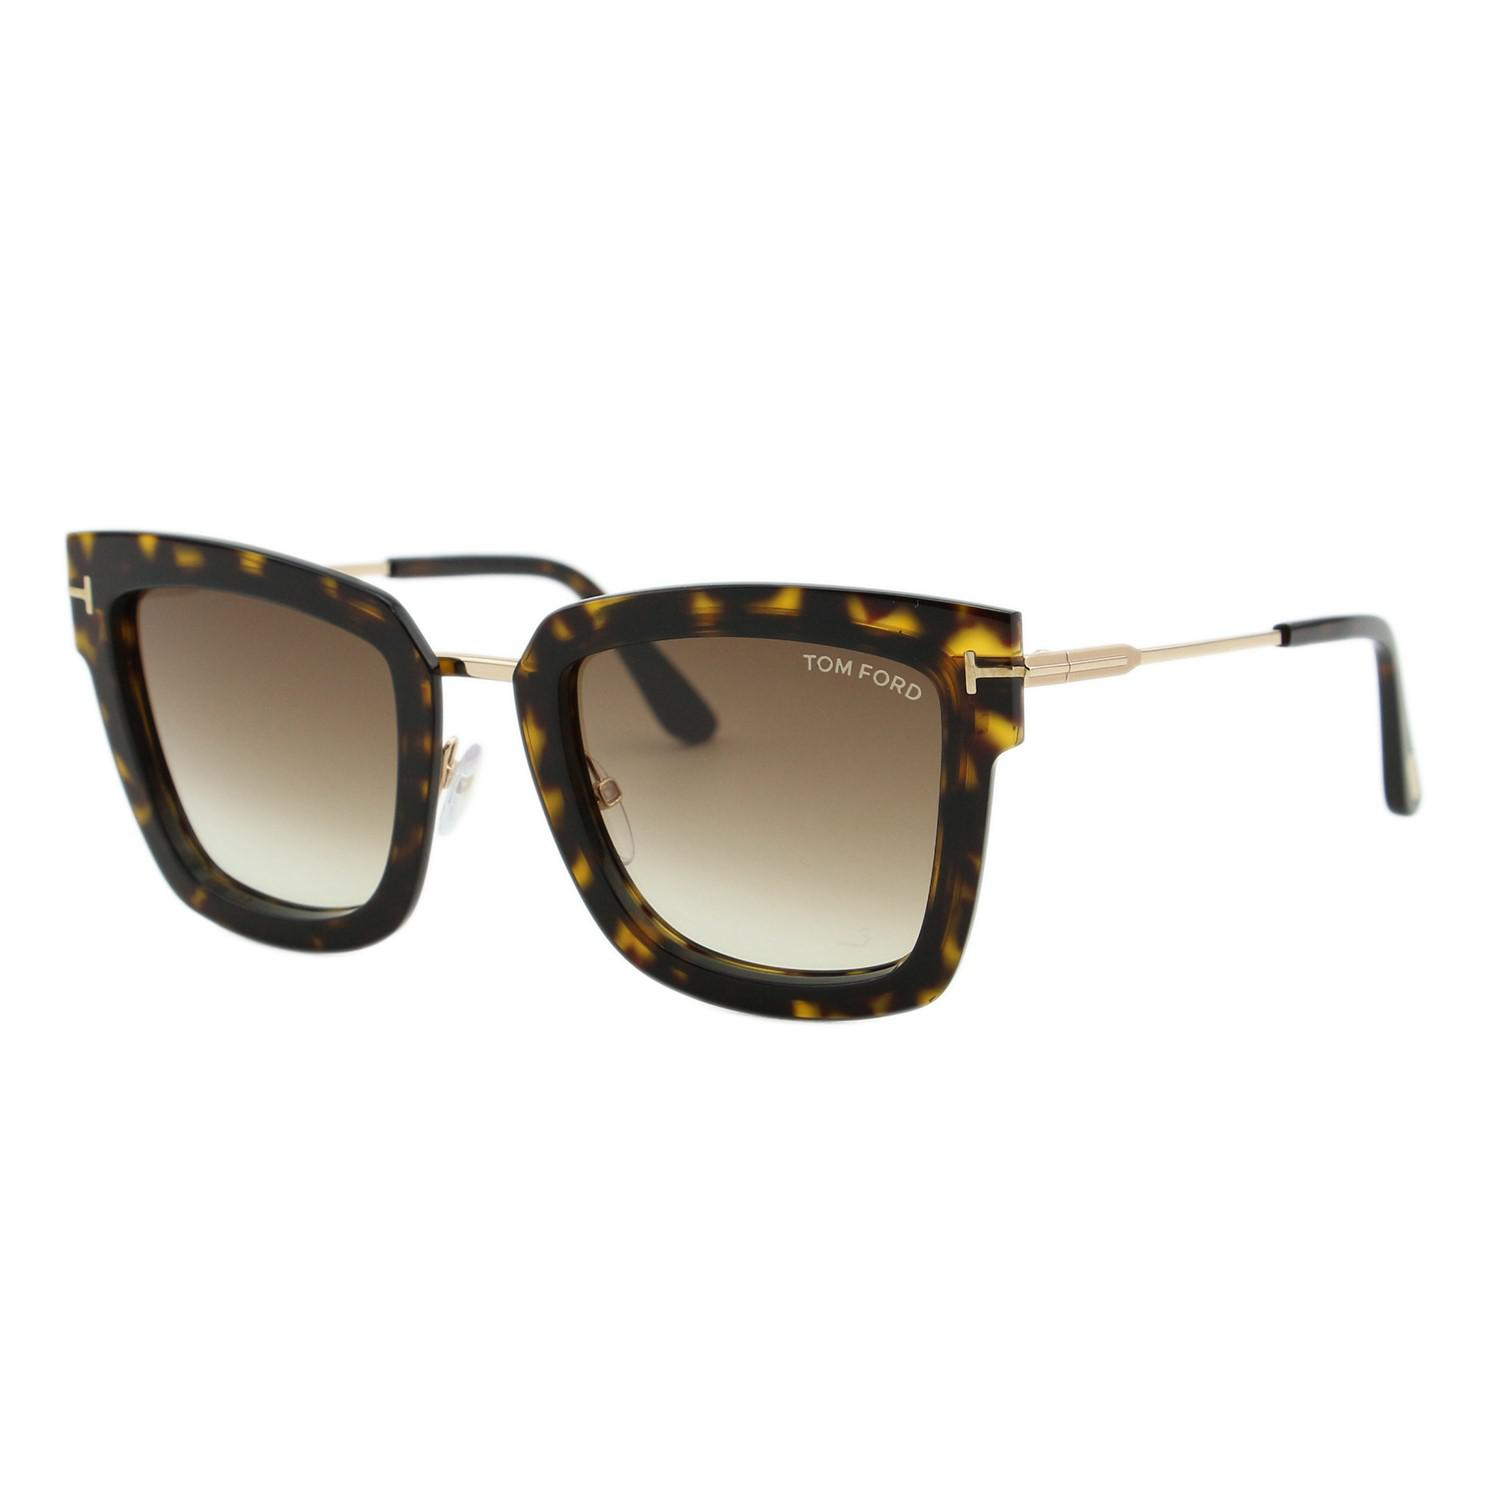 56081db4af Tom Ford Lara-02 Tf573 52f Havana Brown Gold Sunglasses 52mm Lara 02 ...